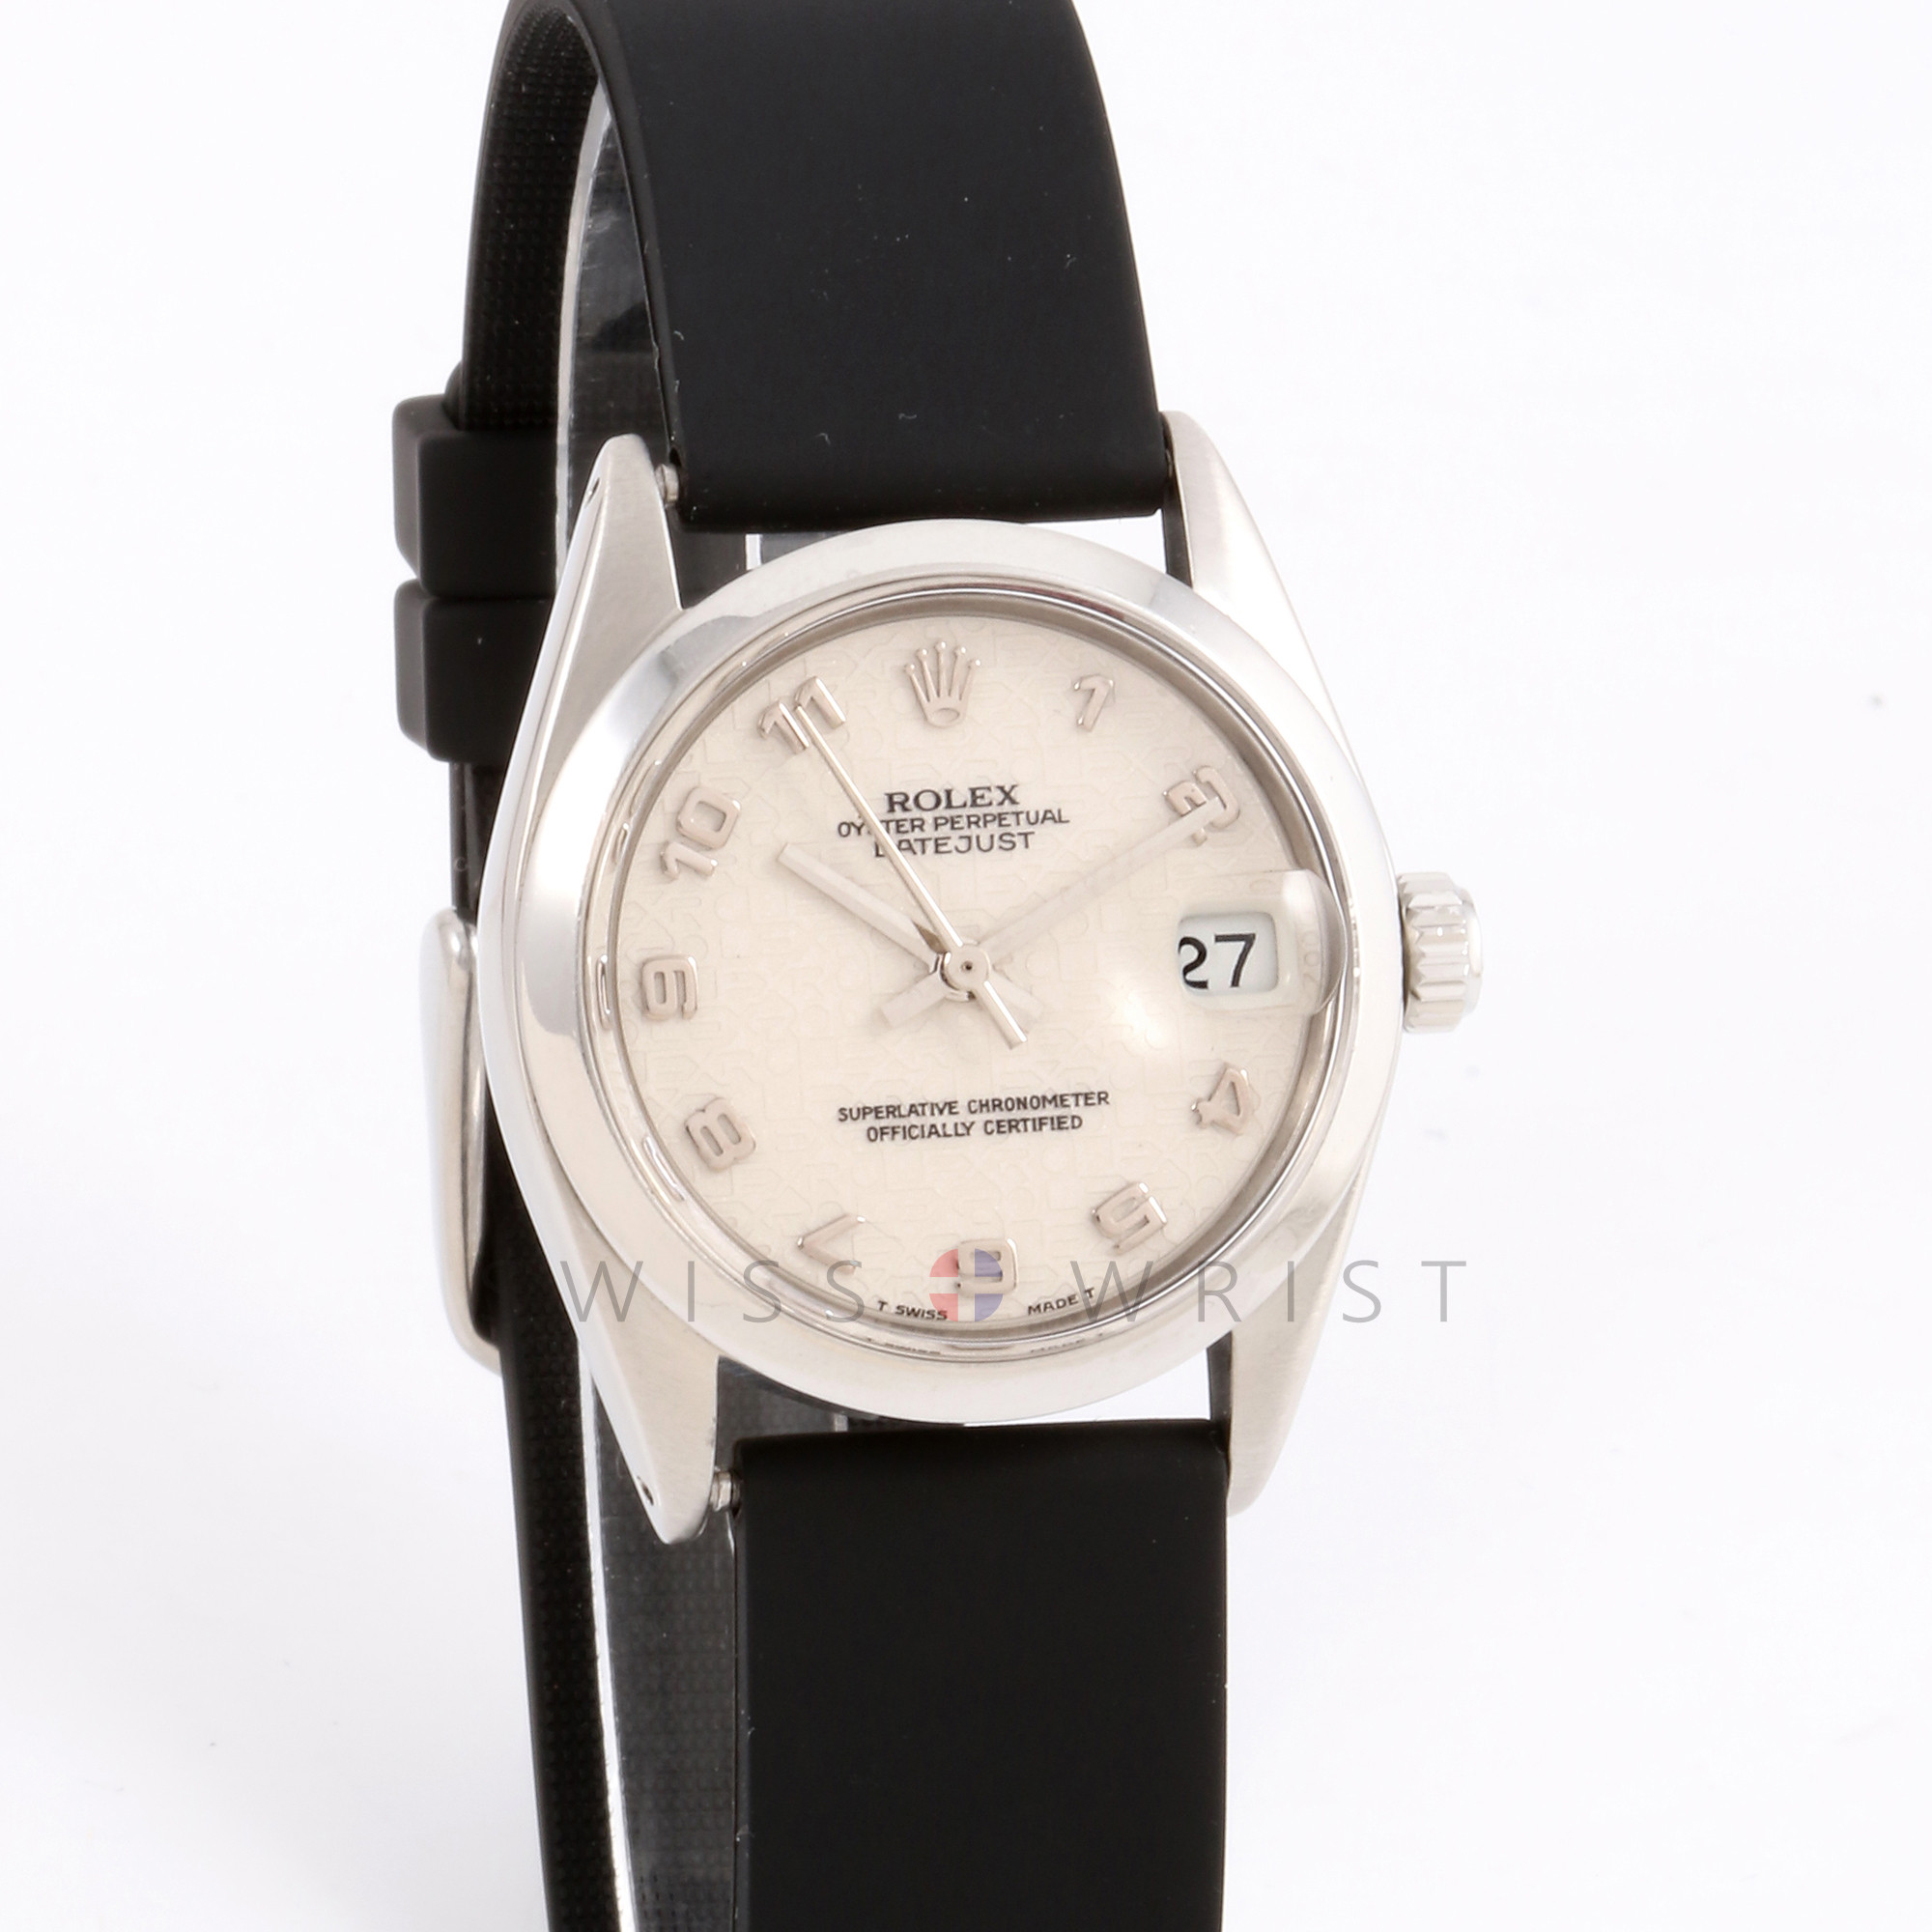 Rolex 6824 Ladies Datejust 31mm Stainless Steel w/ Ivory Arabic Jubilee Dial and Smooth Bezel with Silicone Strap - Pre-Owned